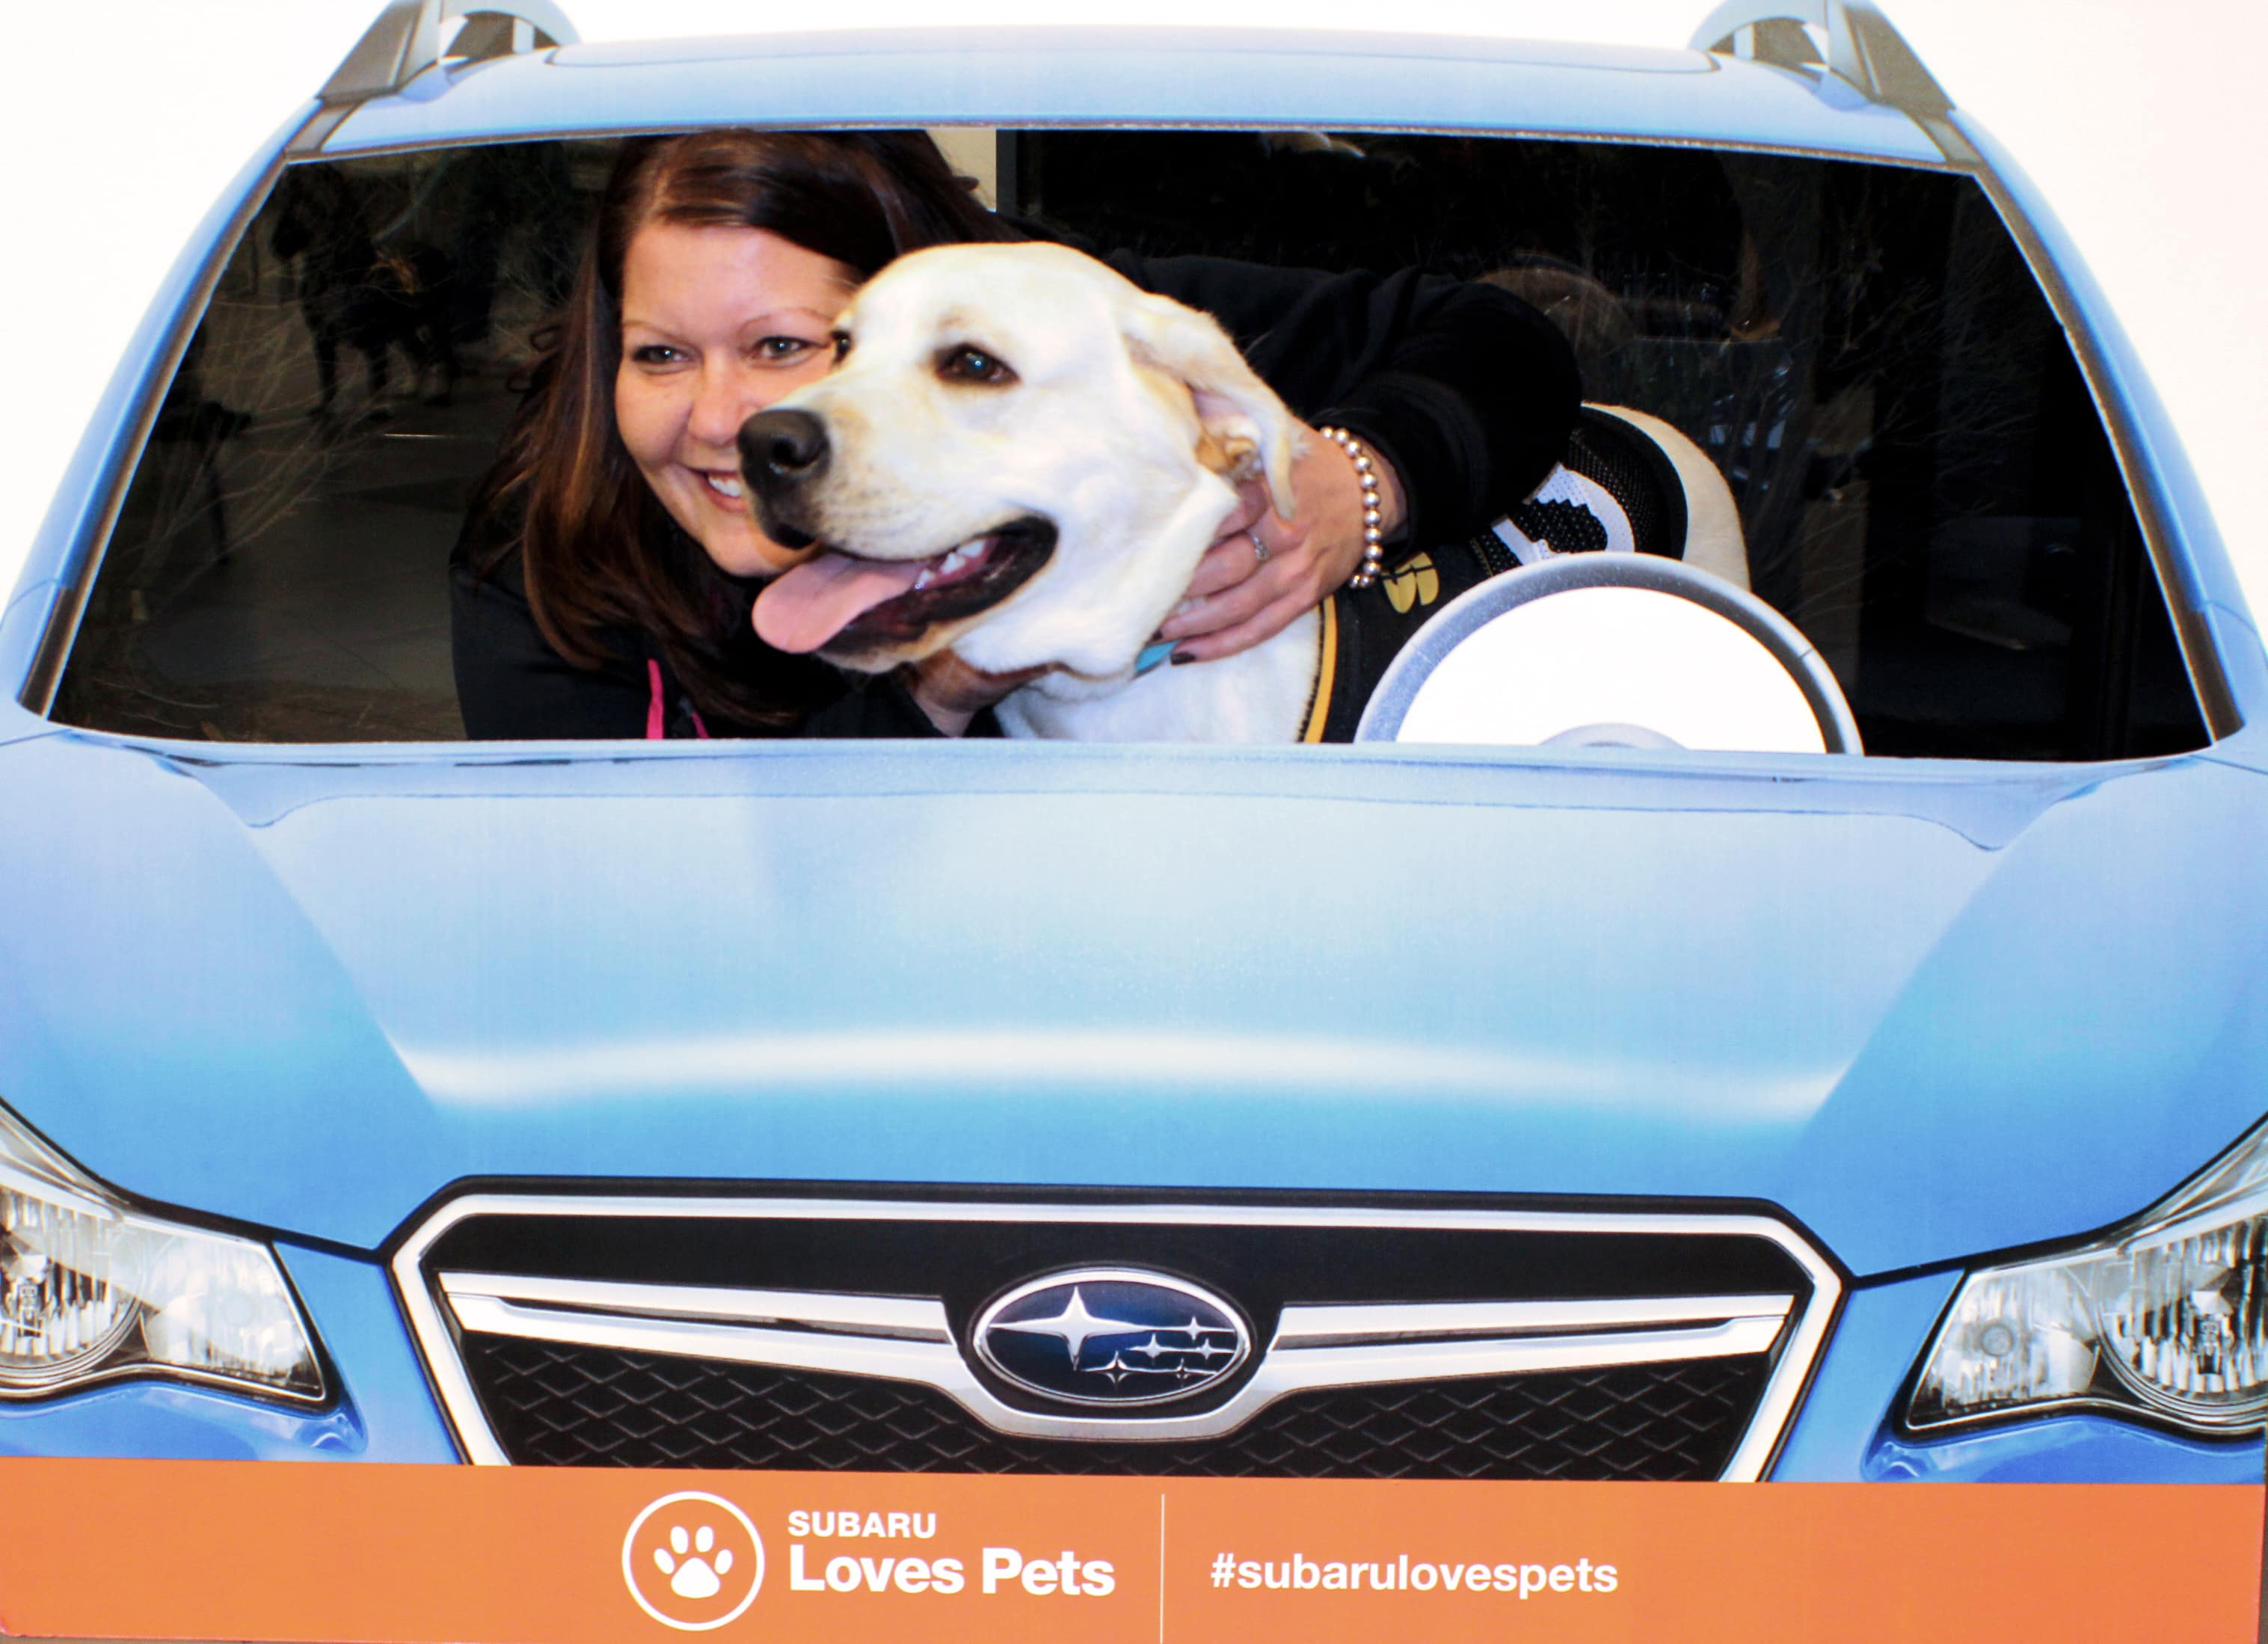 Monroeville and Butler Locations Host Subaru Loves Pets